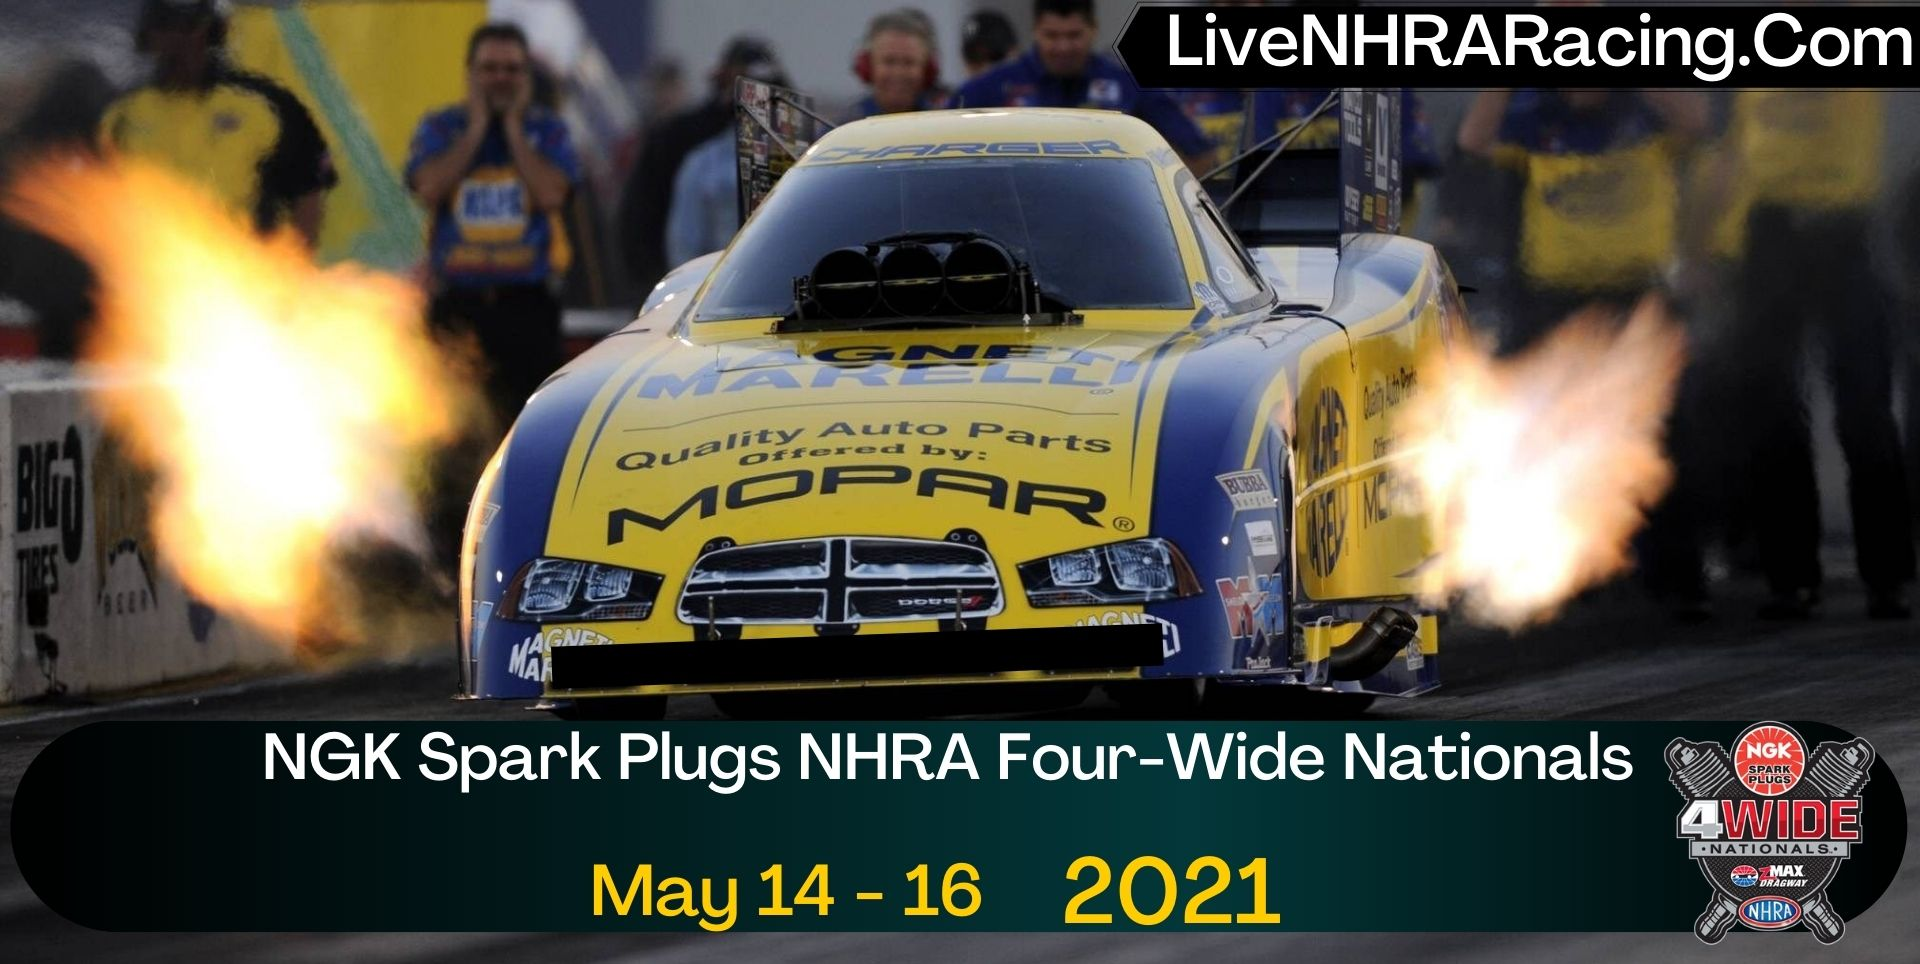 NGK Spark Plugs NHRA Four-Wide Nationals Live Stream 2021